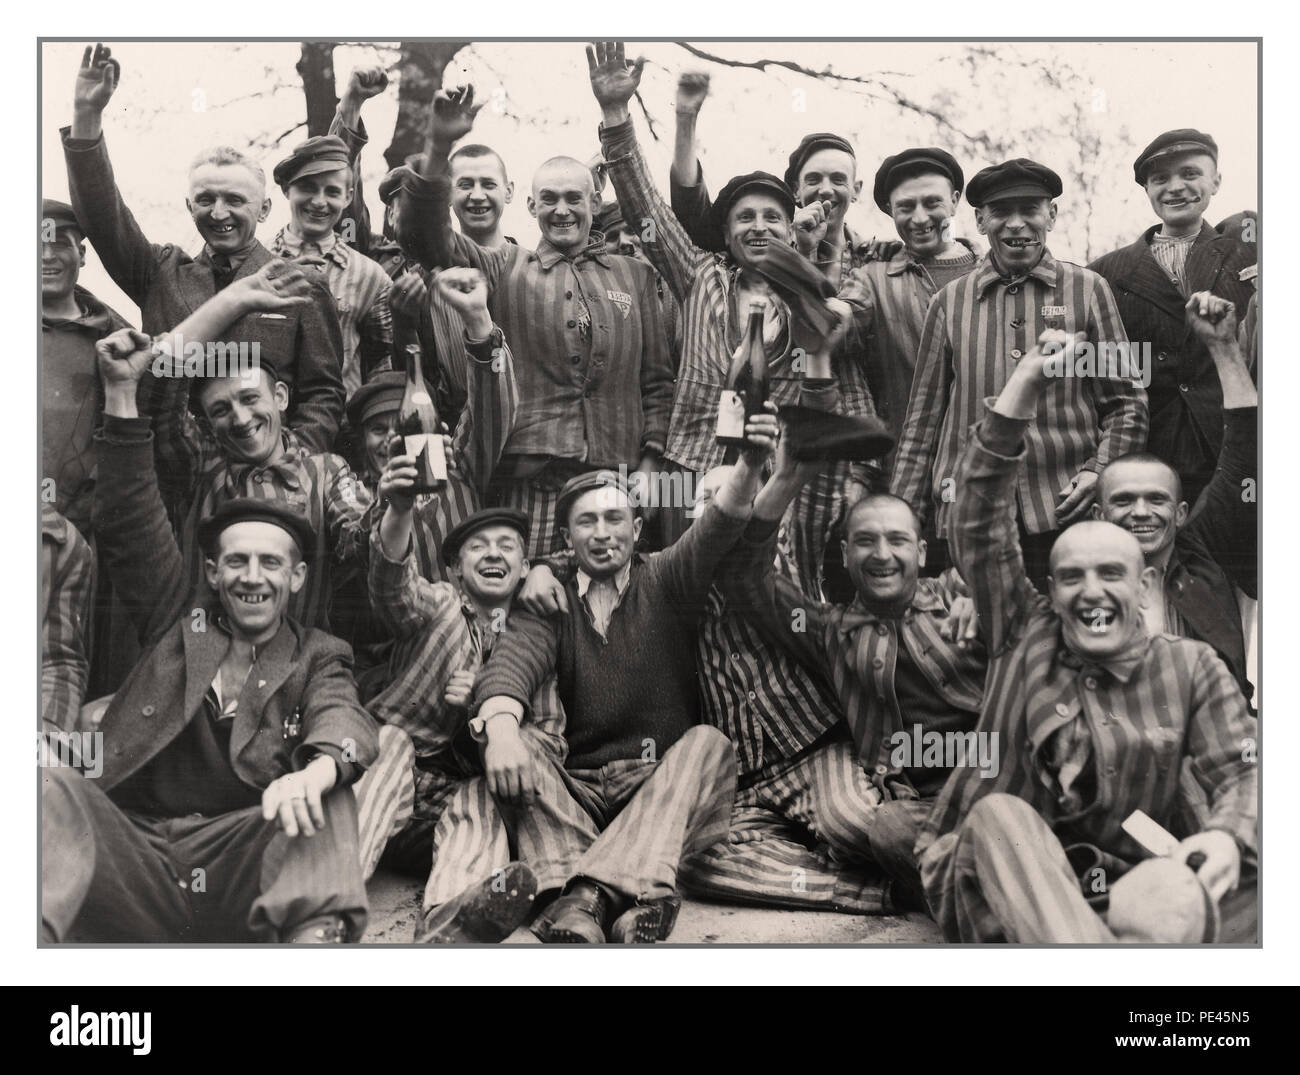 DACHAU LIBERATION Polish prisoners in Dachau concentration camp celebrating their liberation when Allied soldiers liberated the camp April 29, 1945, Dachau was surrendered to Brig. Gen. Henning Linden of the 42nd Infantry Division of the U.S. Army by Untersturmführer Wicker. during World War II Gen. of the Army Dwight D. Eisenhower issued a communiqué regarding the capture of Dachau concentration camp: 'Our forces liberated and mopped up the infamous concentration camp at Dachau. Approximately 32,000 prisoners were liberated; 300 SS camp guards were quickly neutralized. - Stock Image